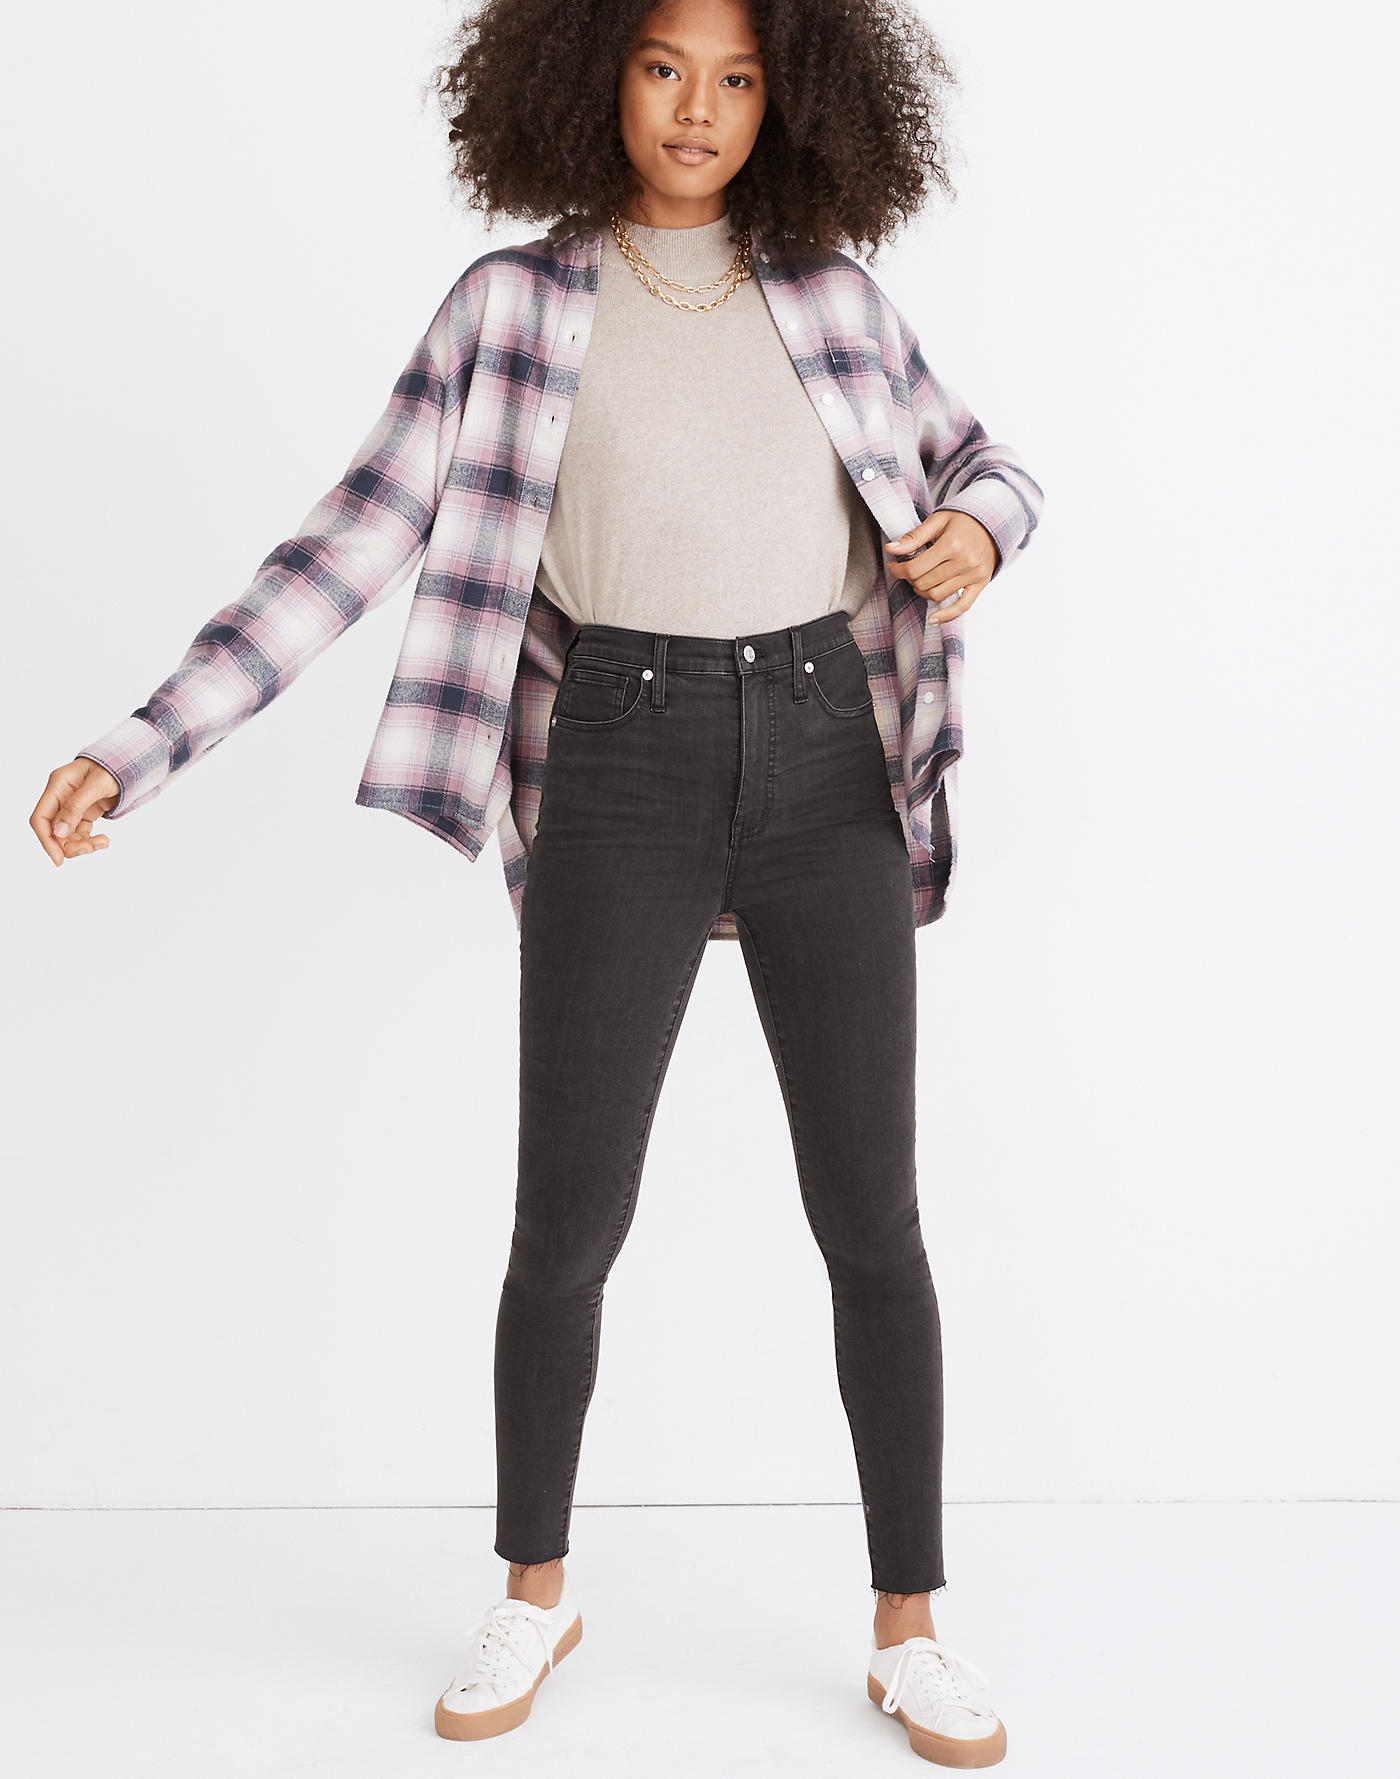 Madewell 11 High-Rise Skinny Jeans in Lunar Wash